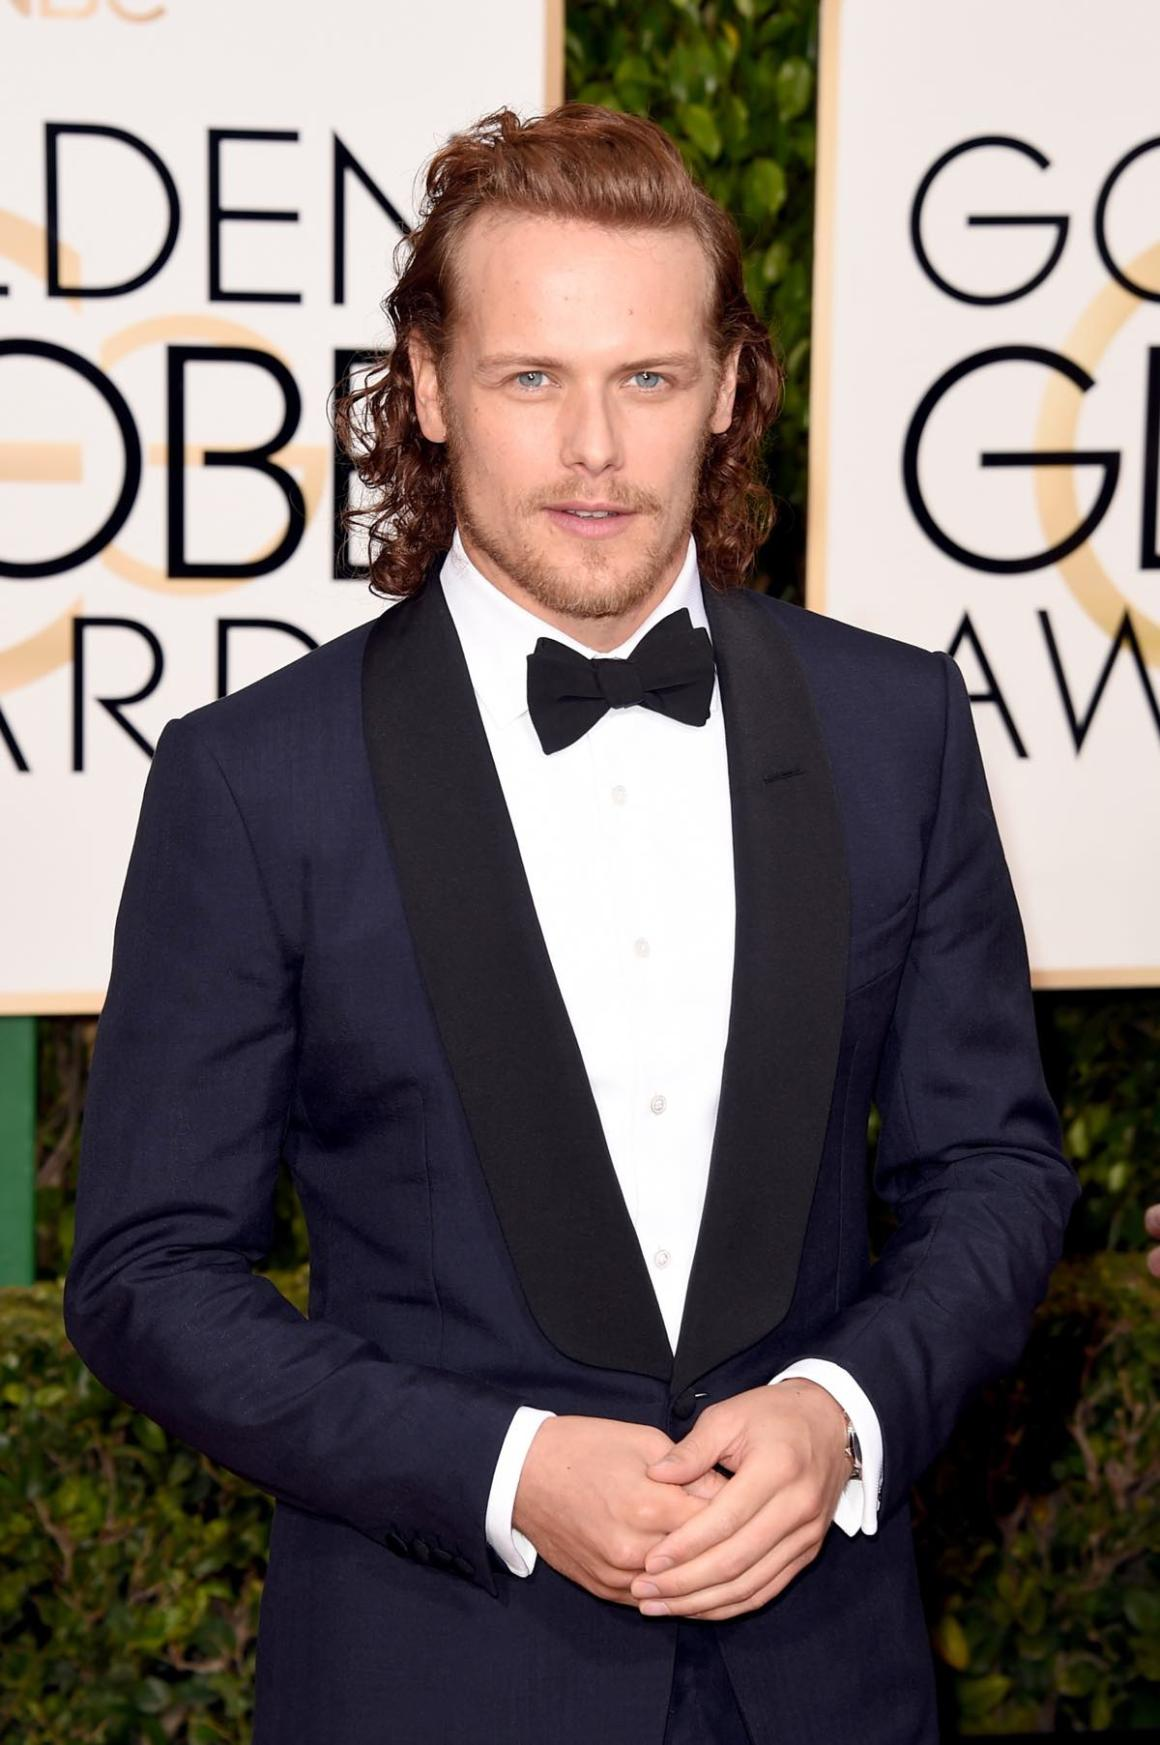 Sam Heughan attends the 73rd Annual Golden Globe Awards - Arrivals